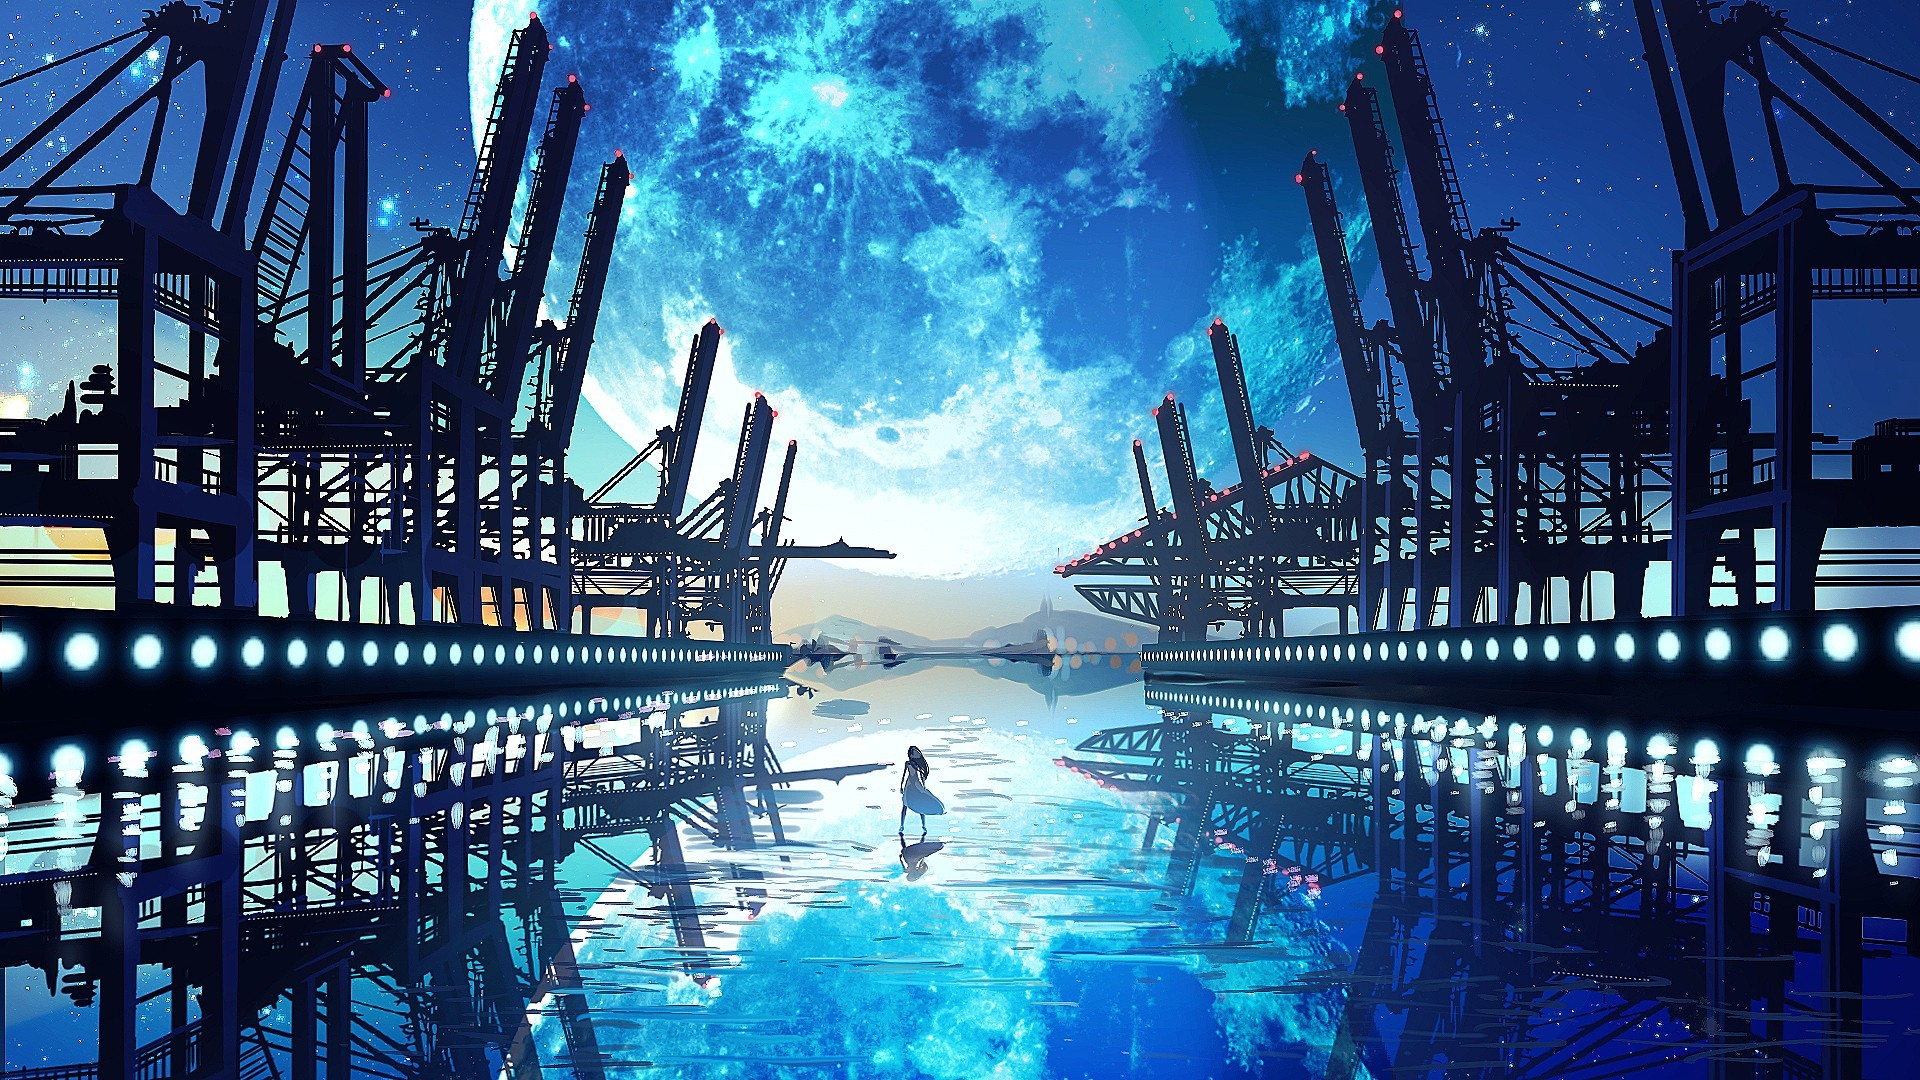 1920x1080 reflection, ports, water, digital anime art, girl 1440x900 wallpaper